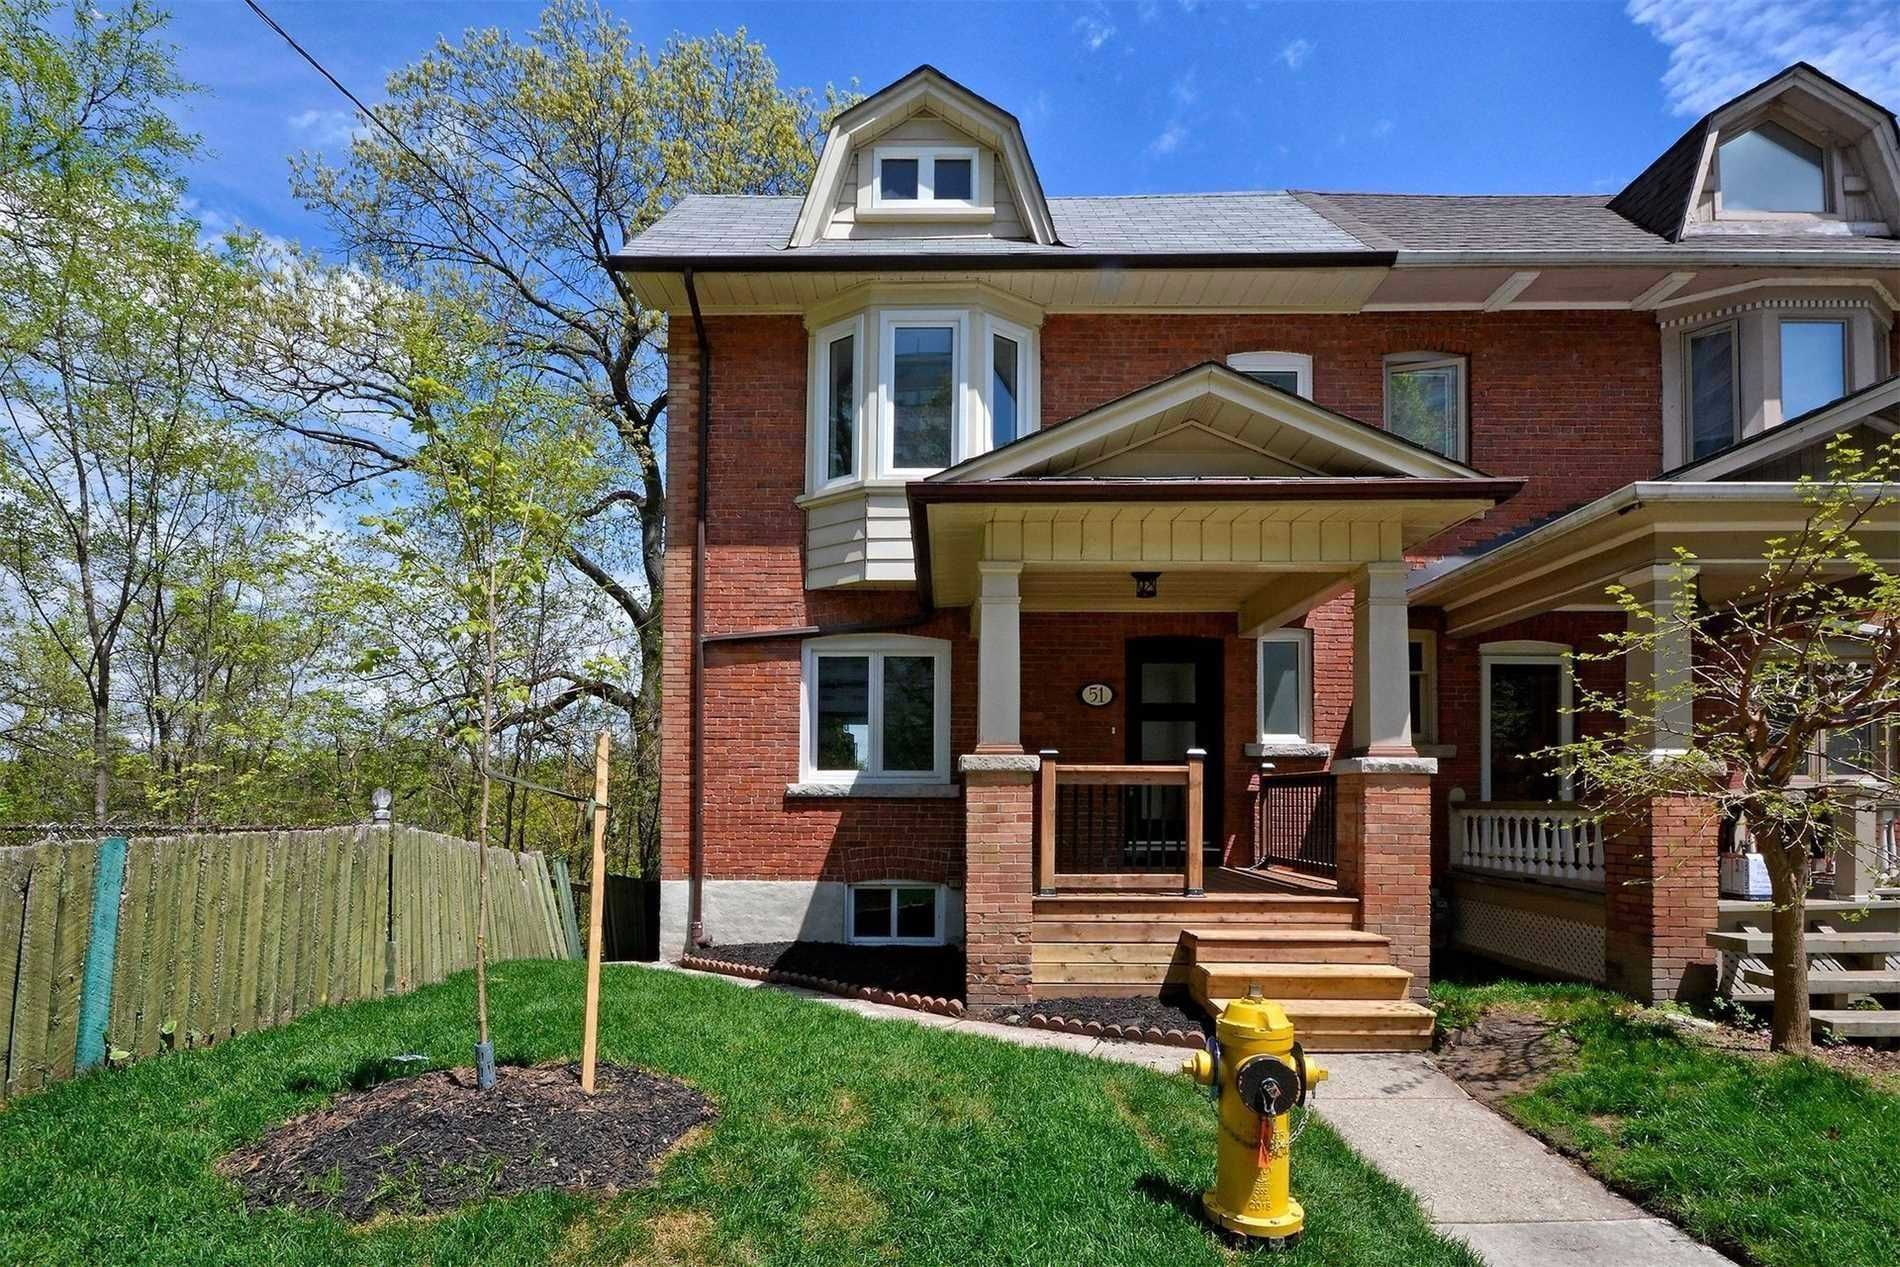 Main Photo: 51 Mountview Avenue in Toronto: High Park North House (2-Storey) for sale (Toronto W02)  : MLS®# W4658427